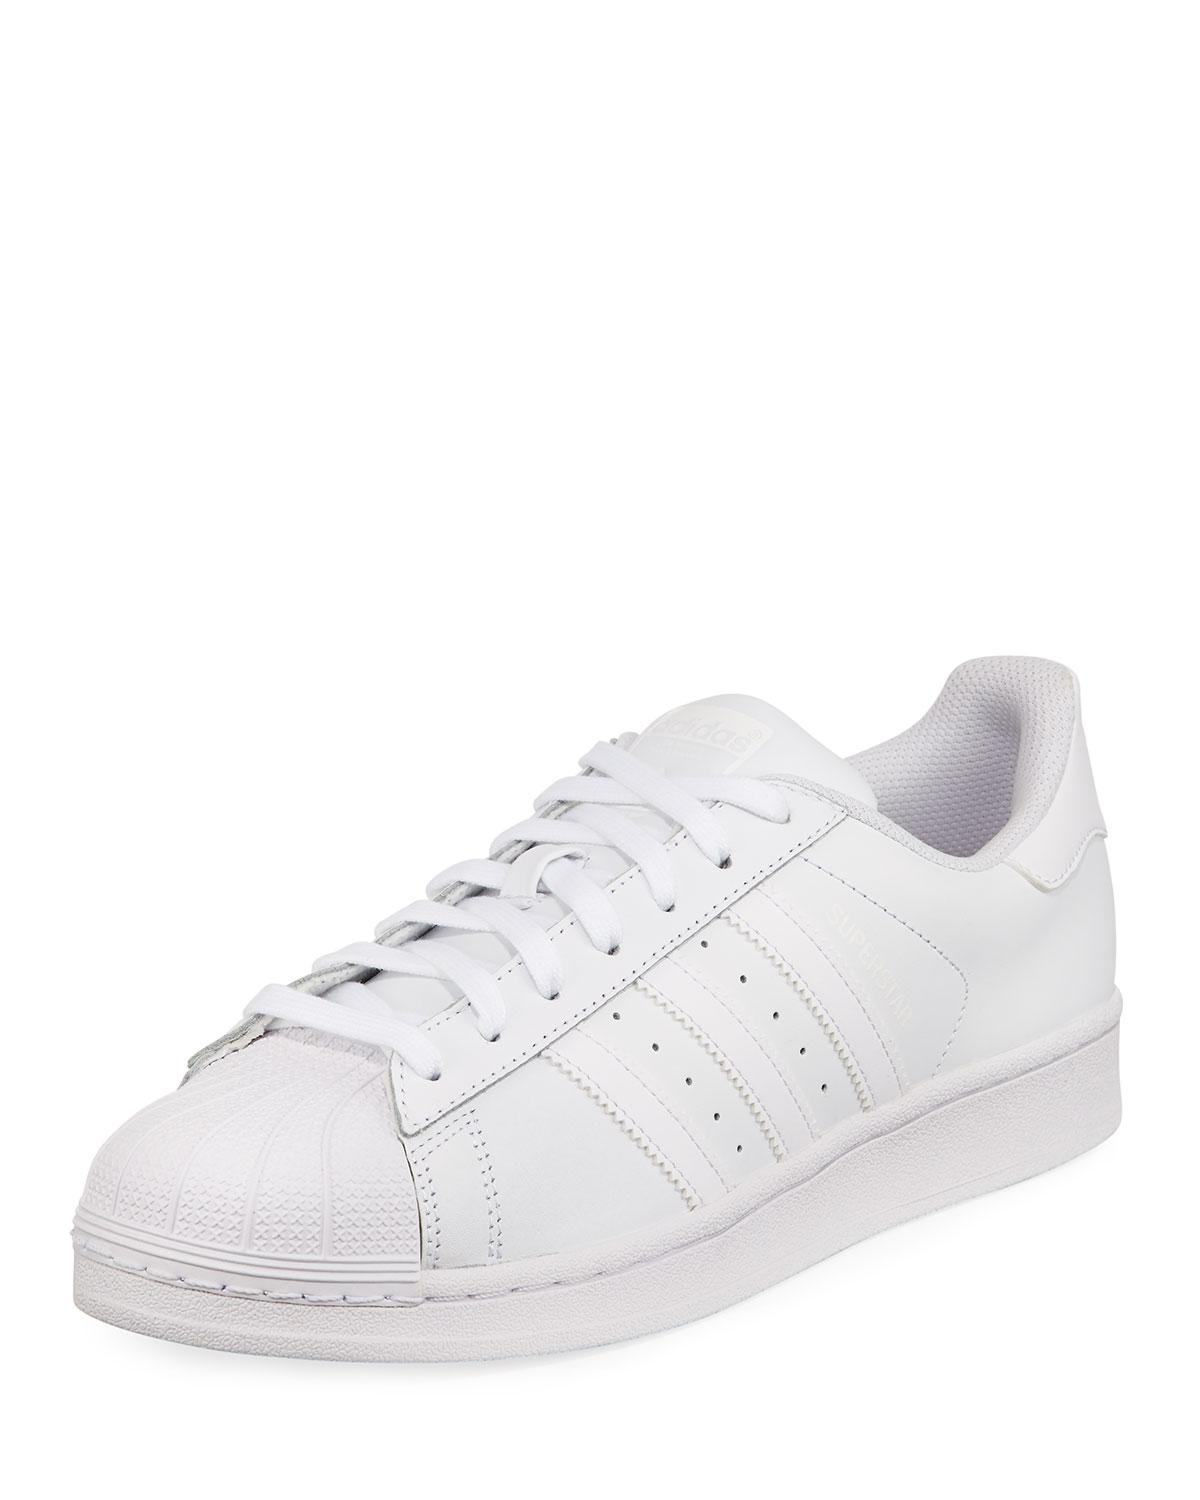 390a1e7961 adidas. White Unisex Adults  Superstar Sneakers.  109 From Neiman Marcus